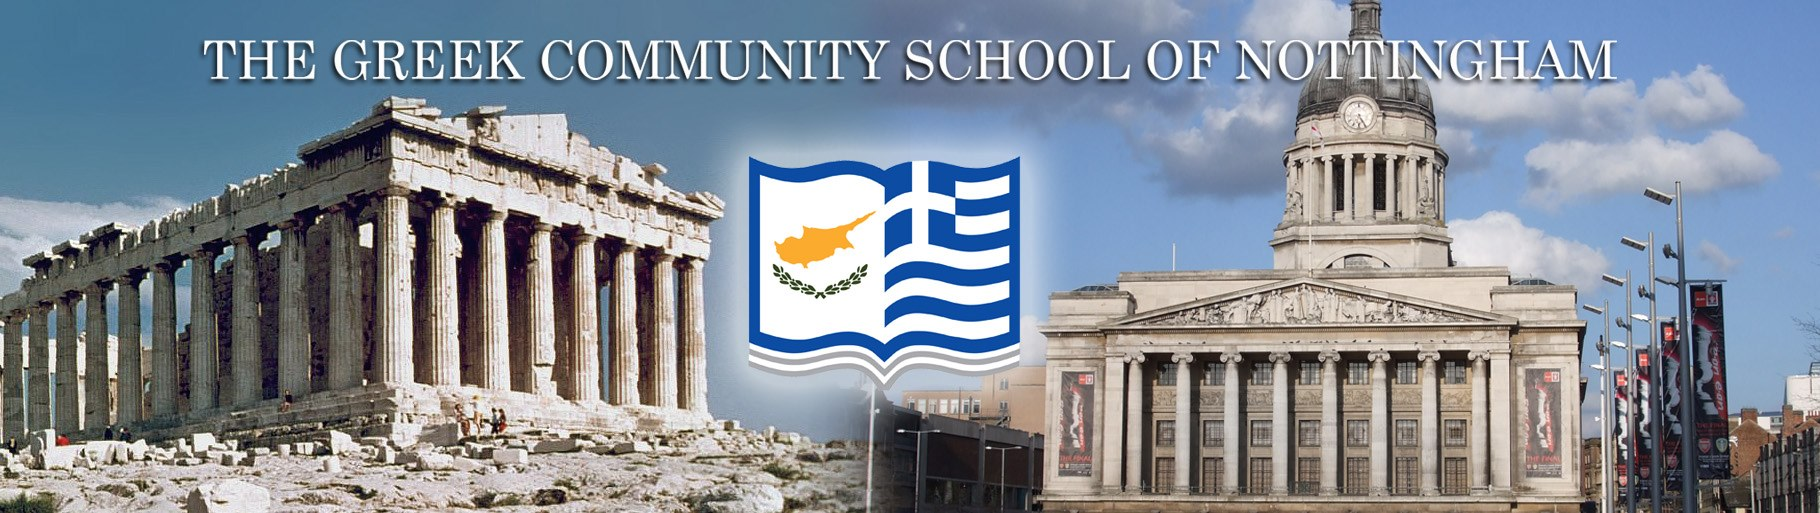 Greek School of Nottingham